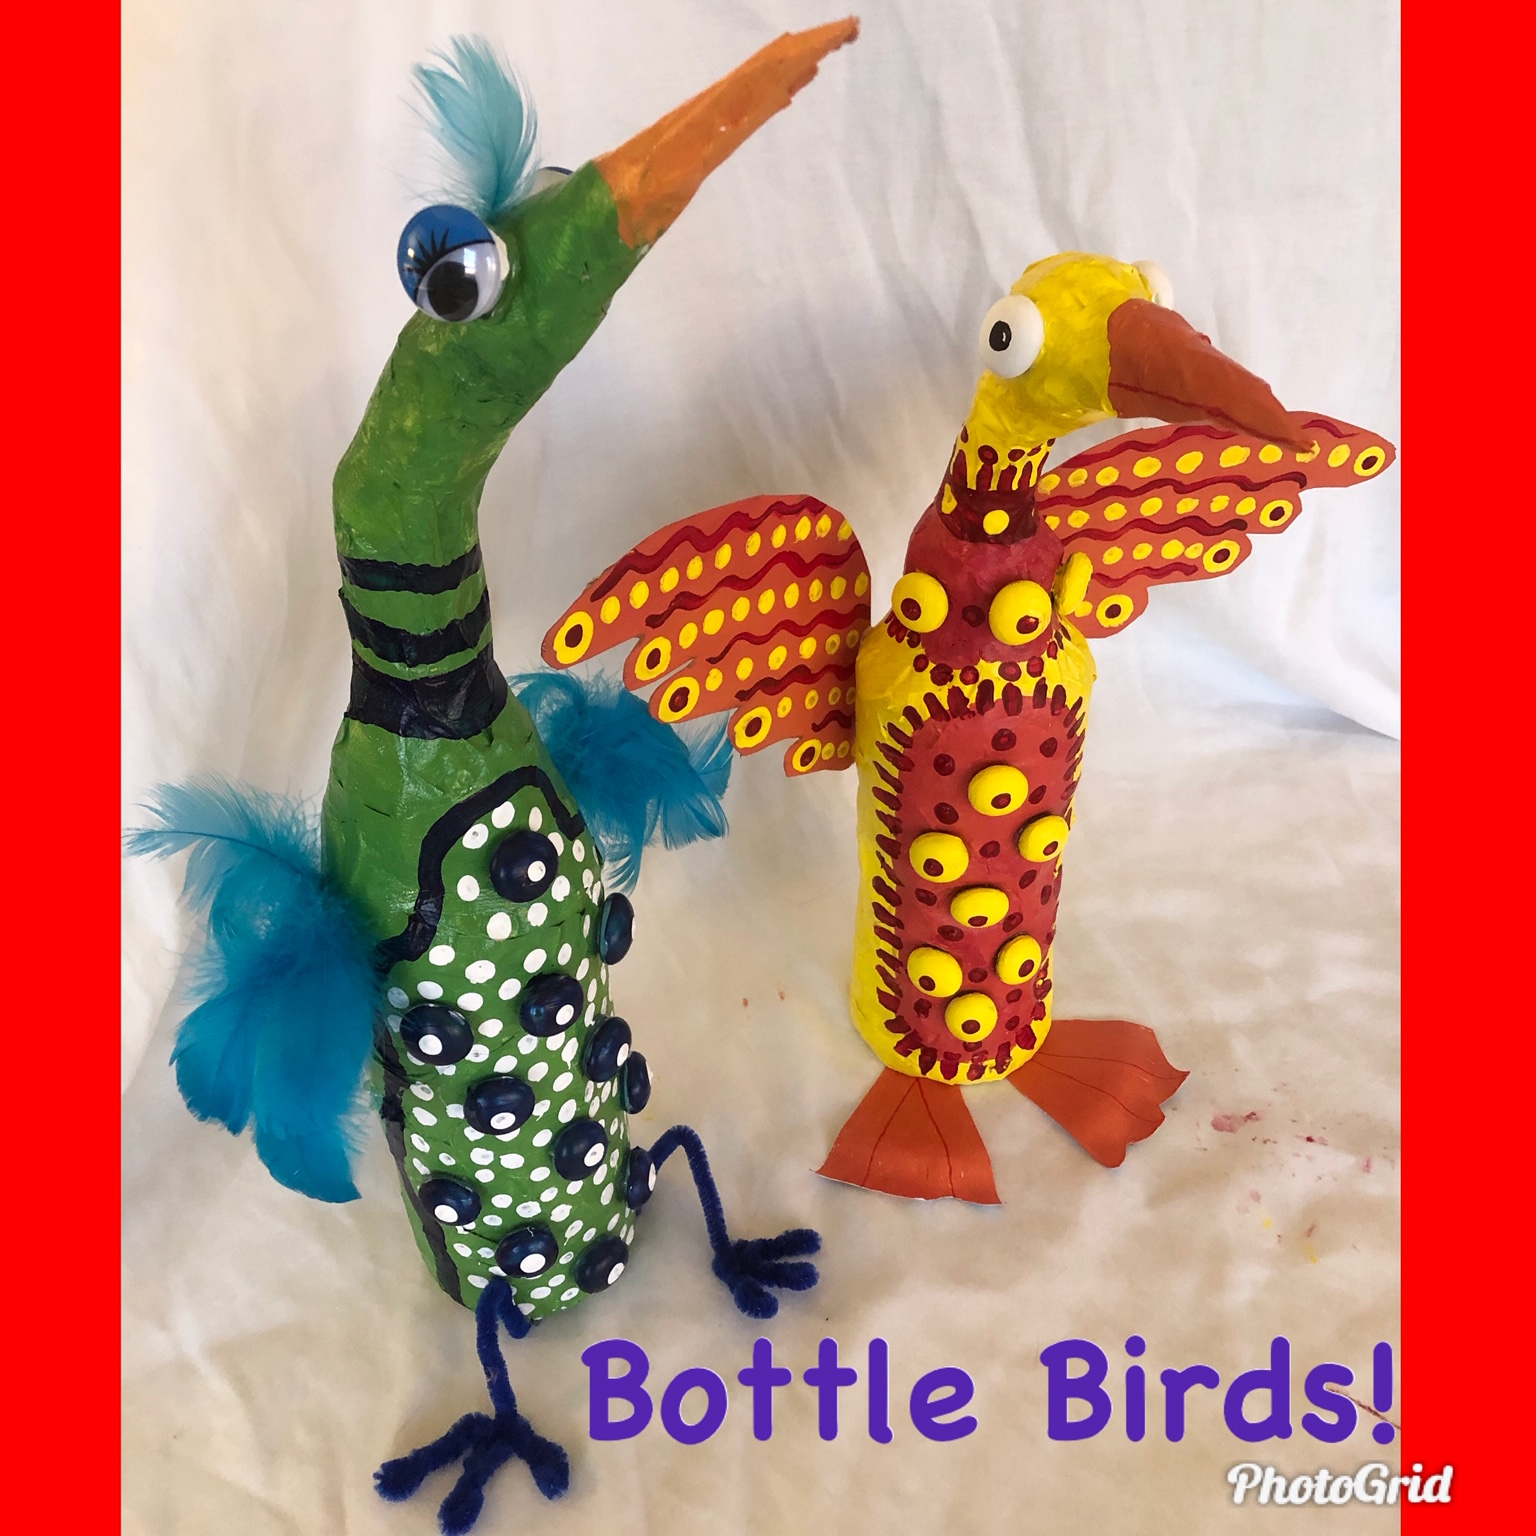 Bottle Birds